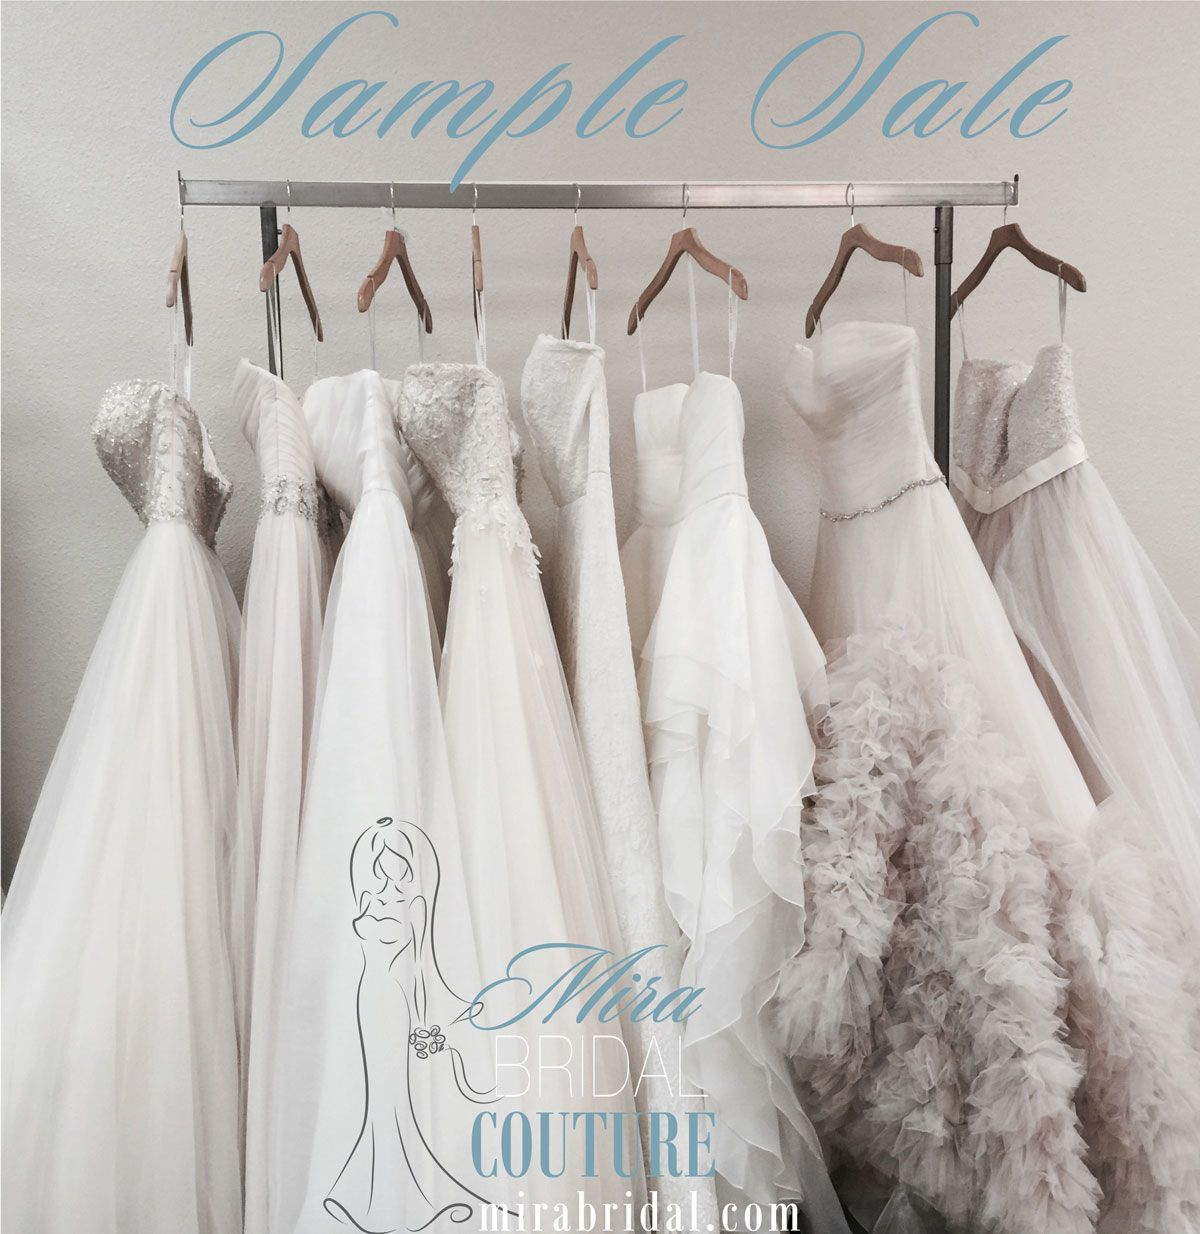 100+ Wedding Dress Samples for Sale - Dresses for Wedding Party ...